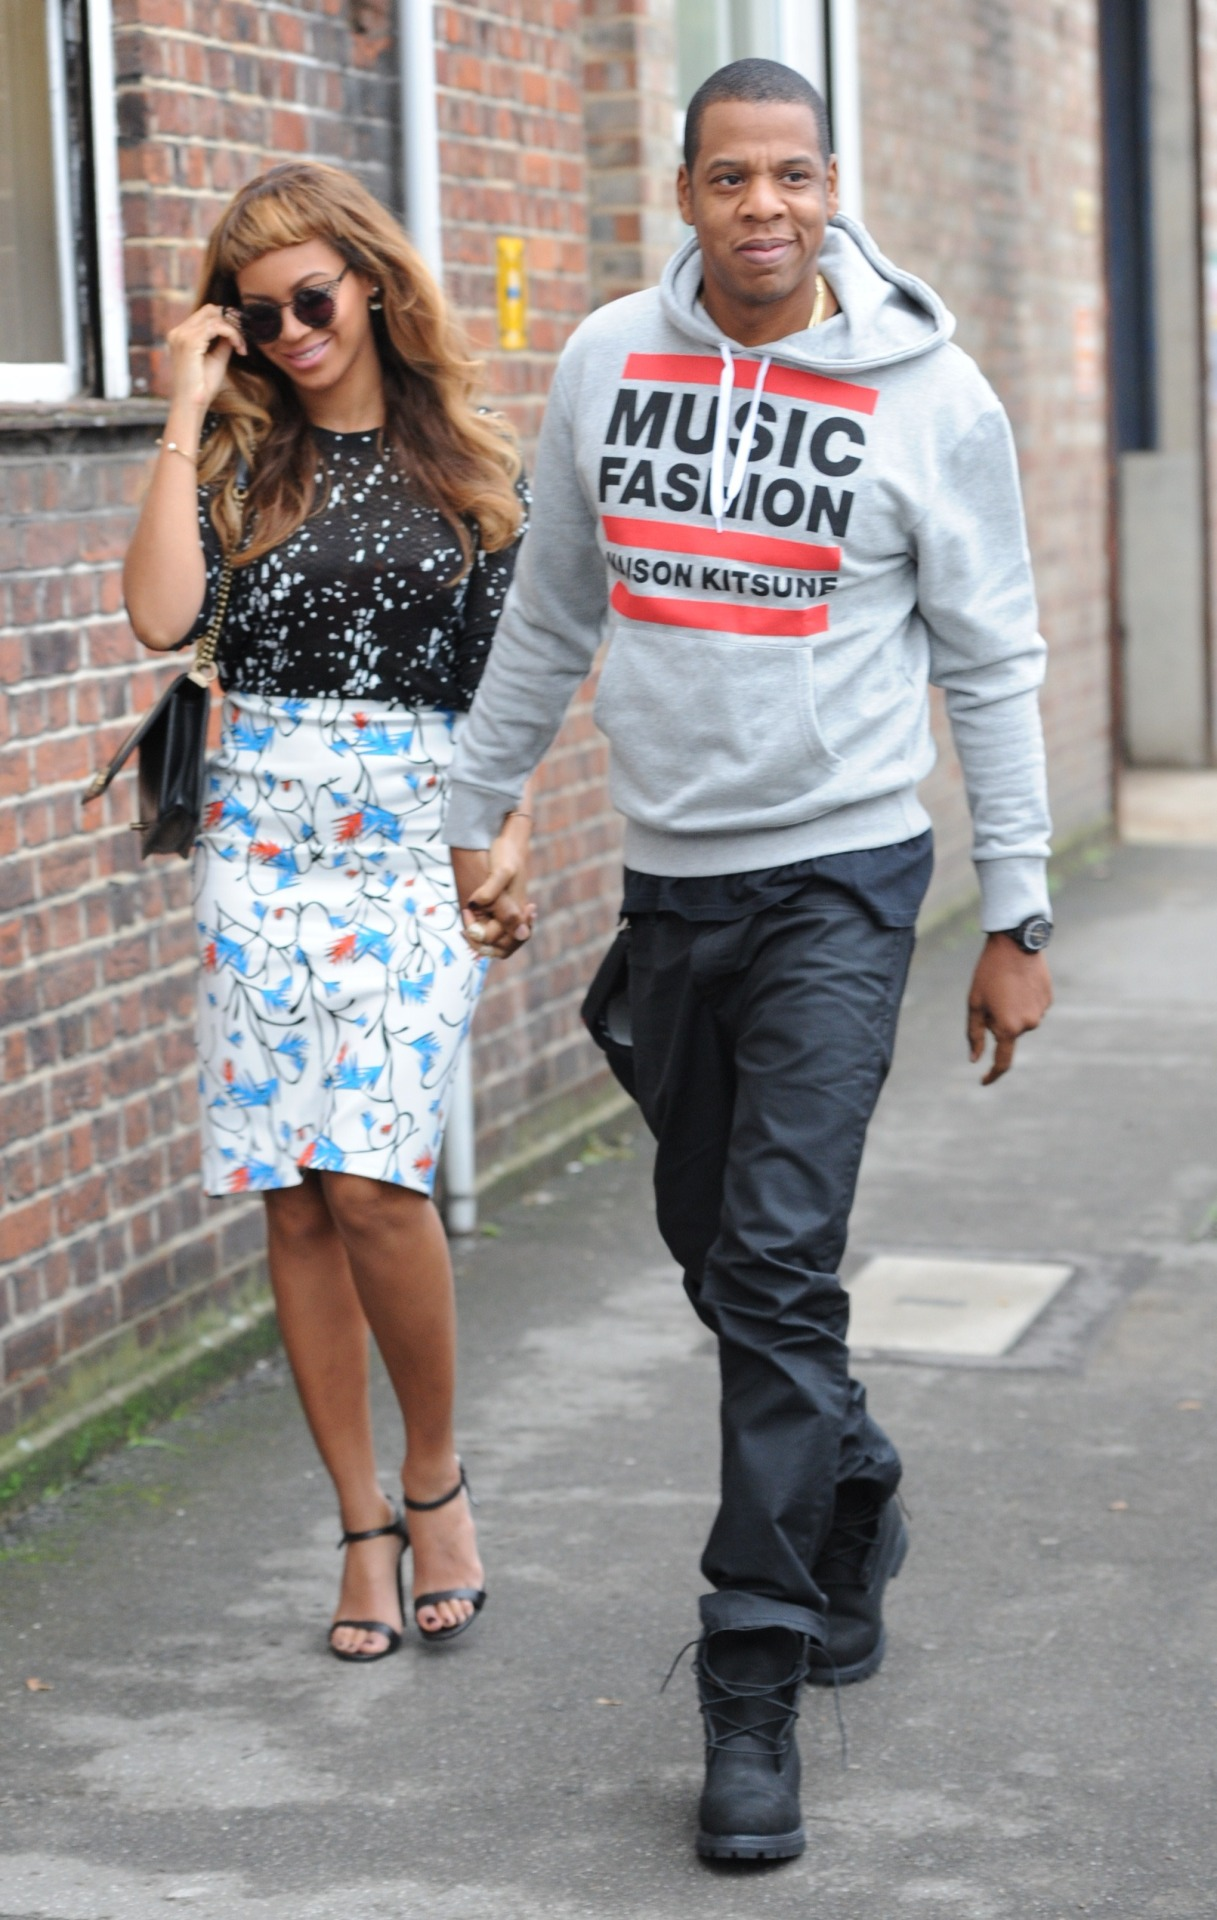 girlsluvbeyonce: